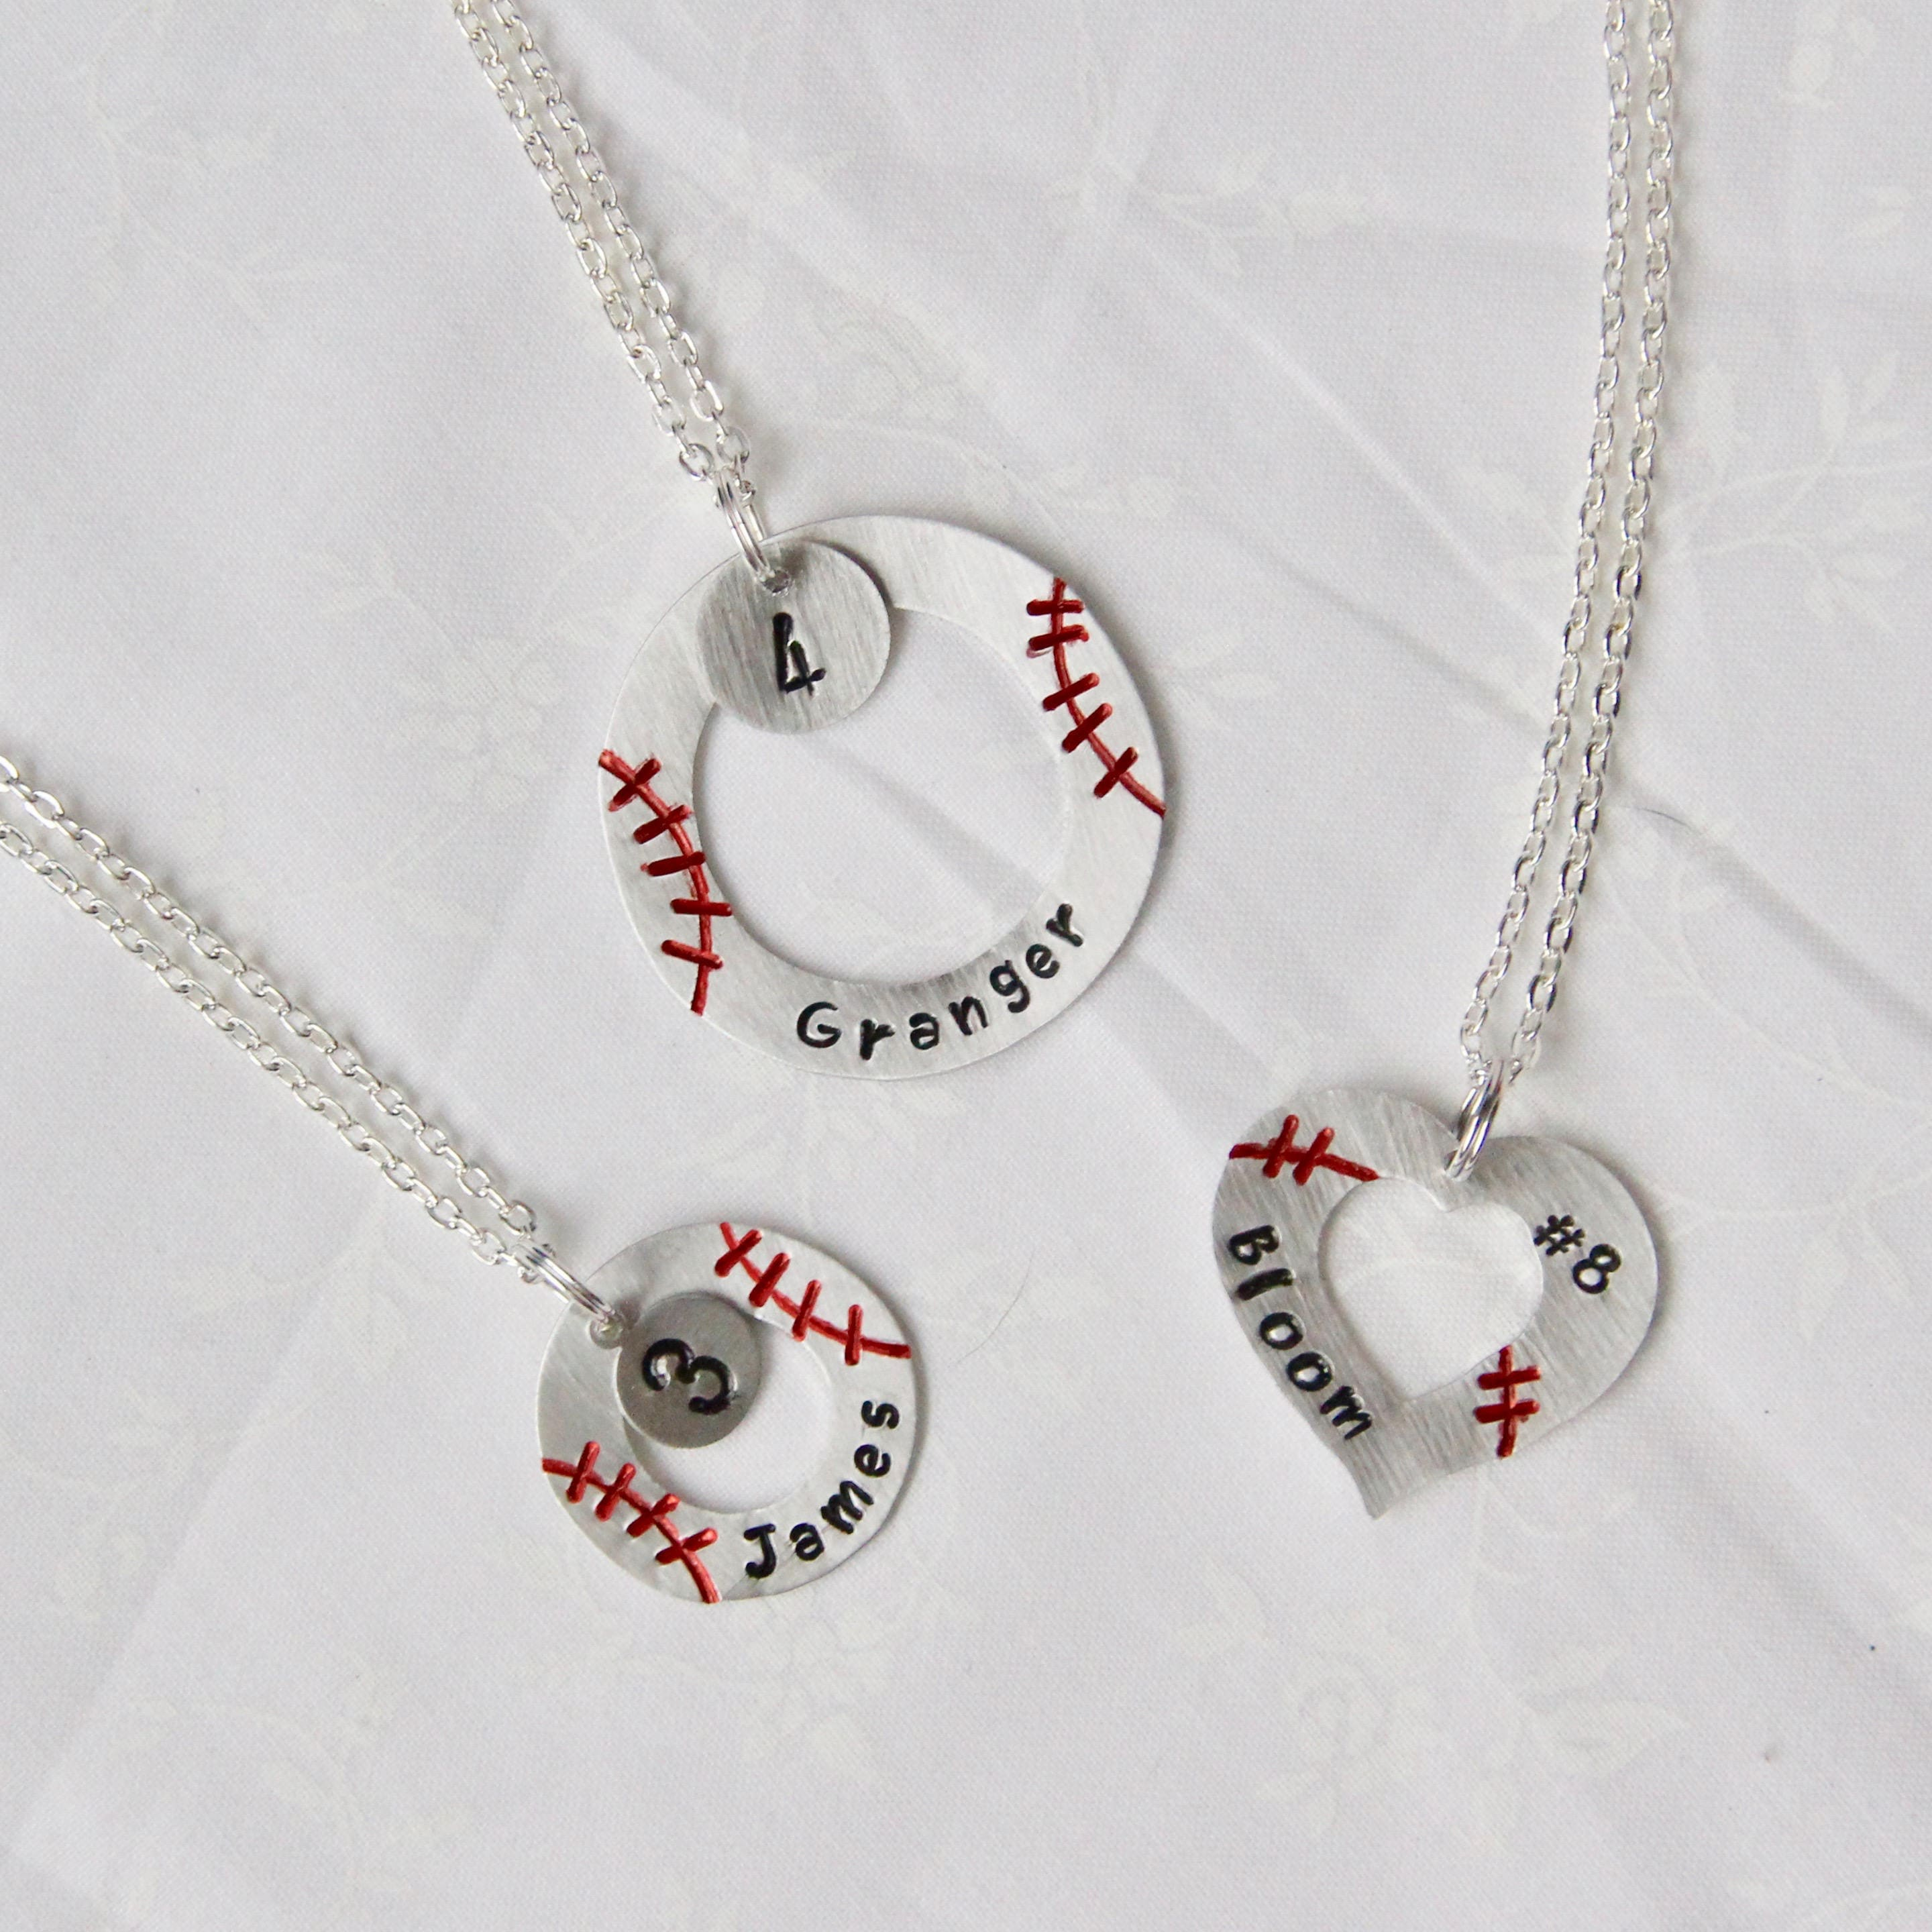 theme baseball necklace fancy jewellery pendant silver pitcher ksvhs script